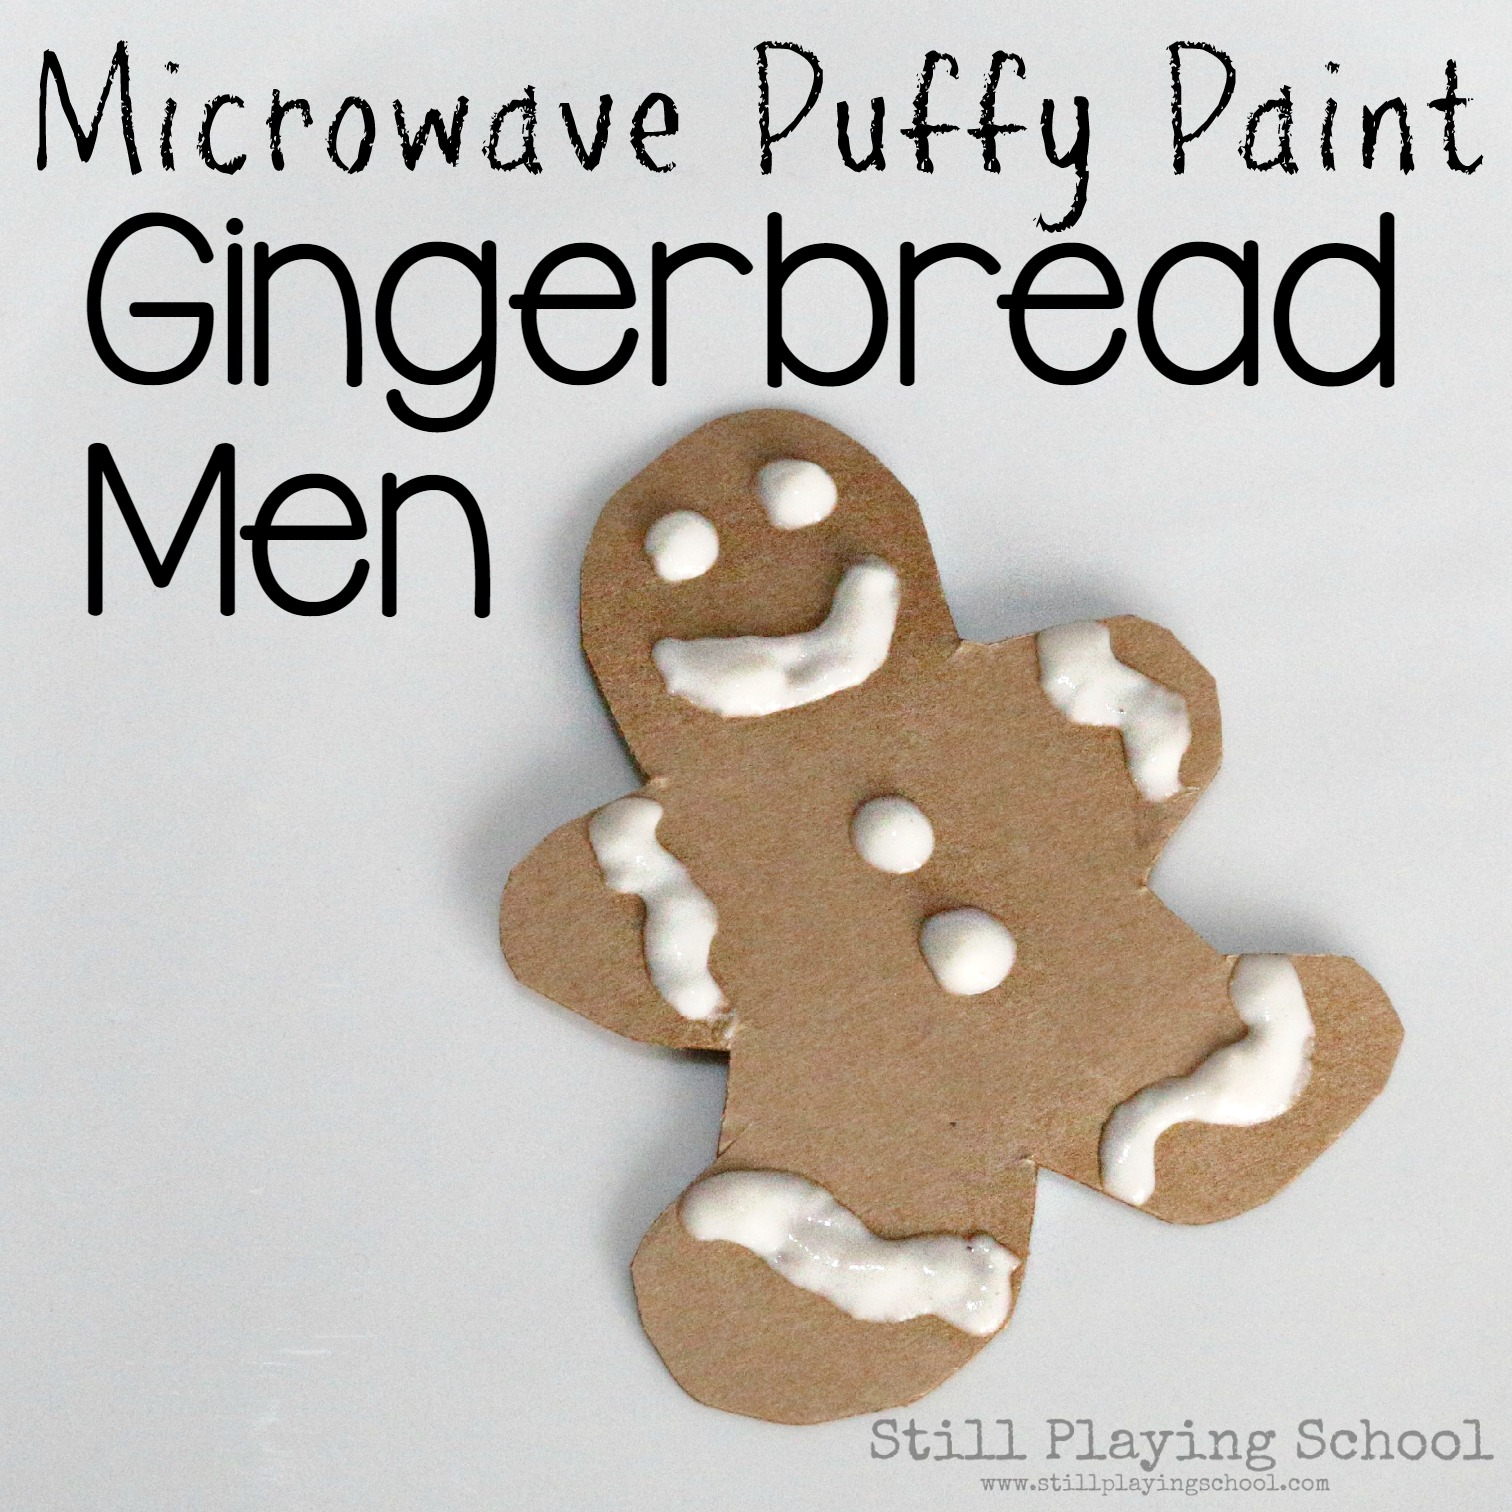 Puffy Paint Gingerbread